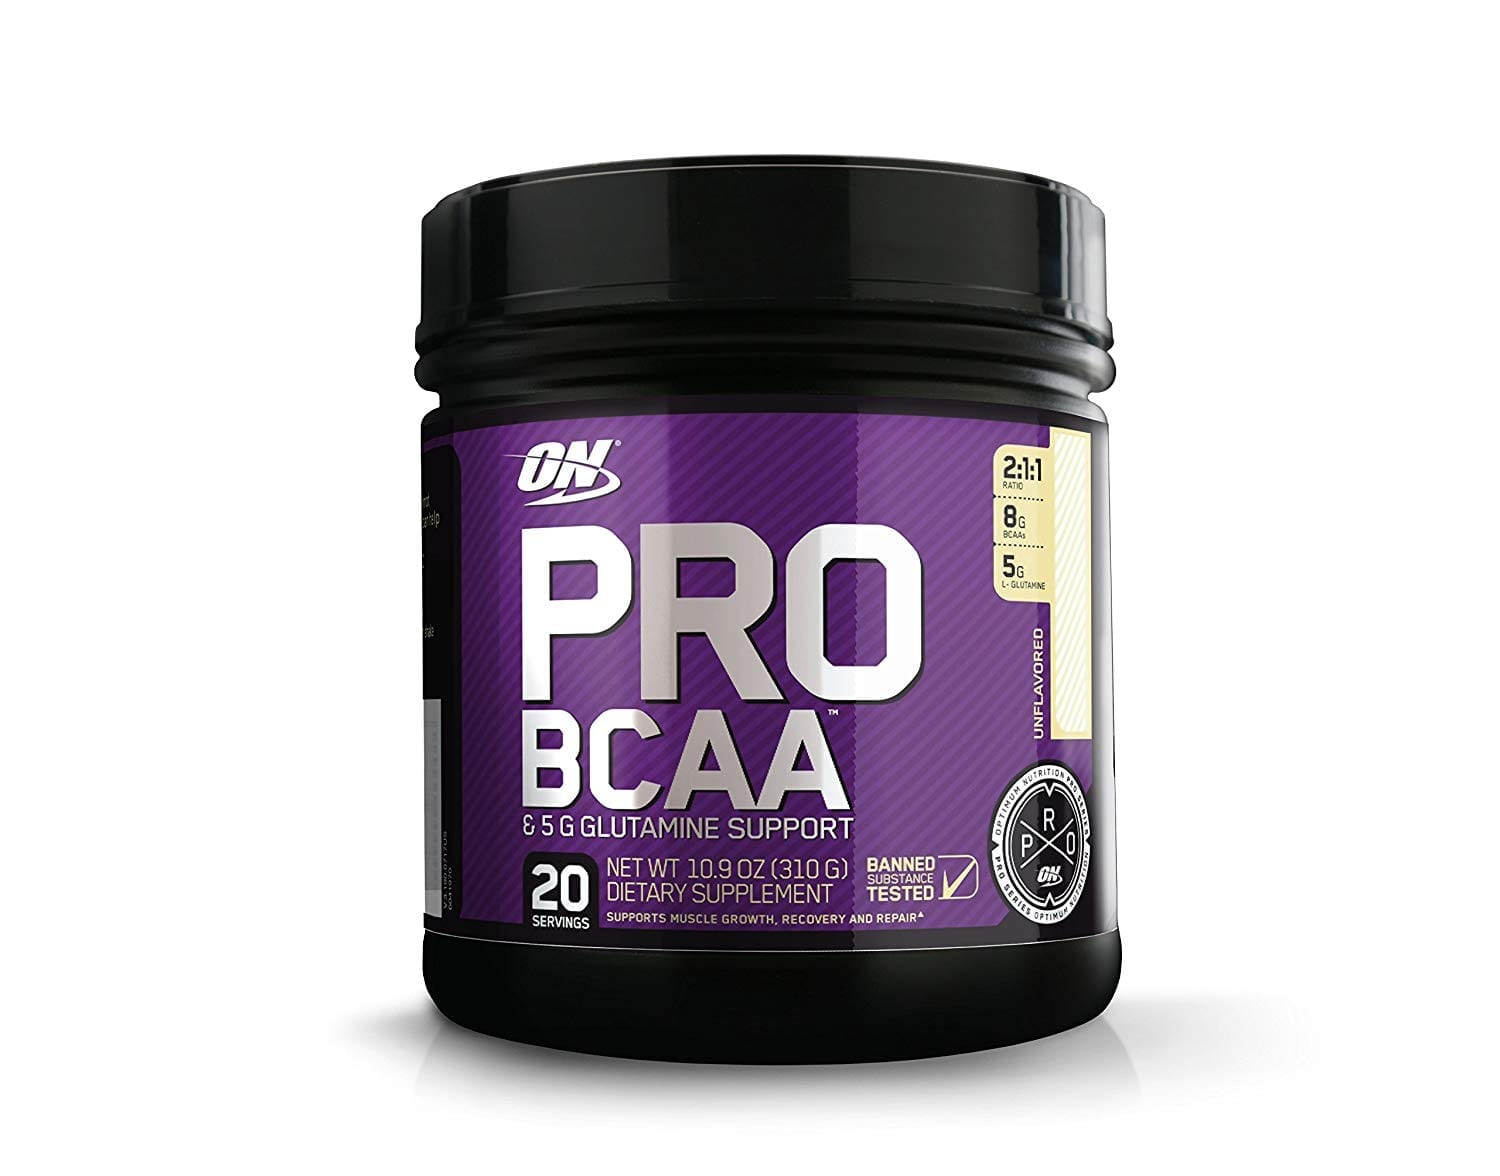 Pro BCAA Review – Is It Worth Buying?